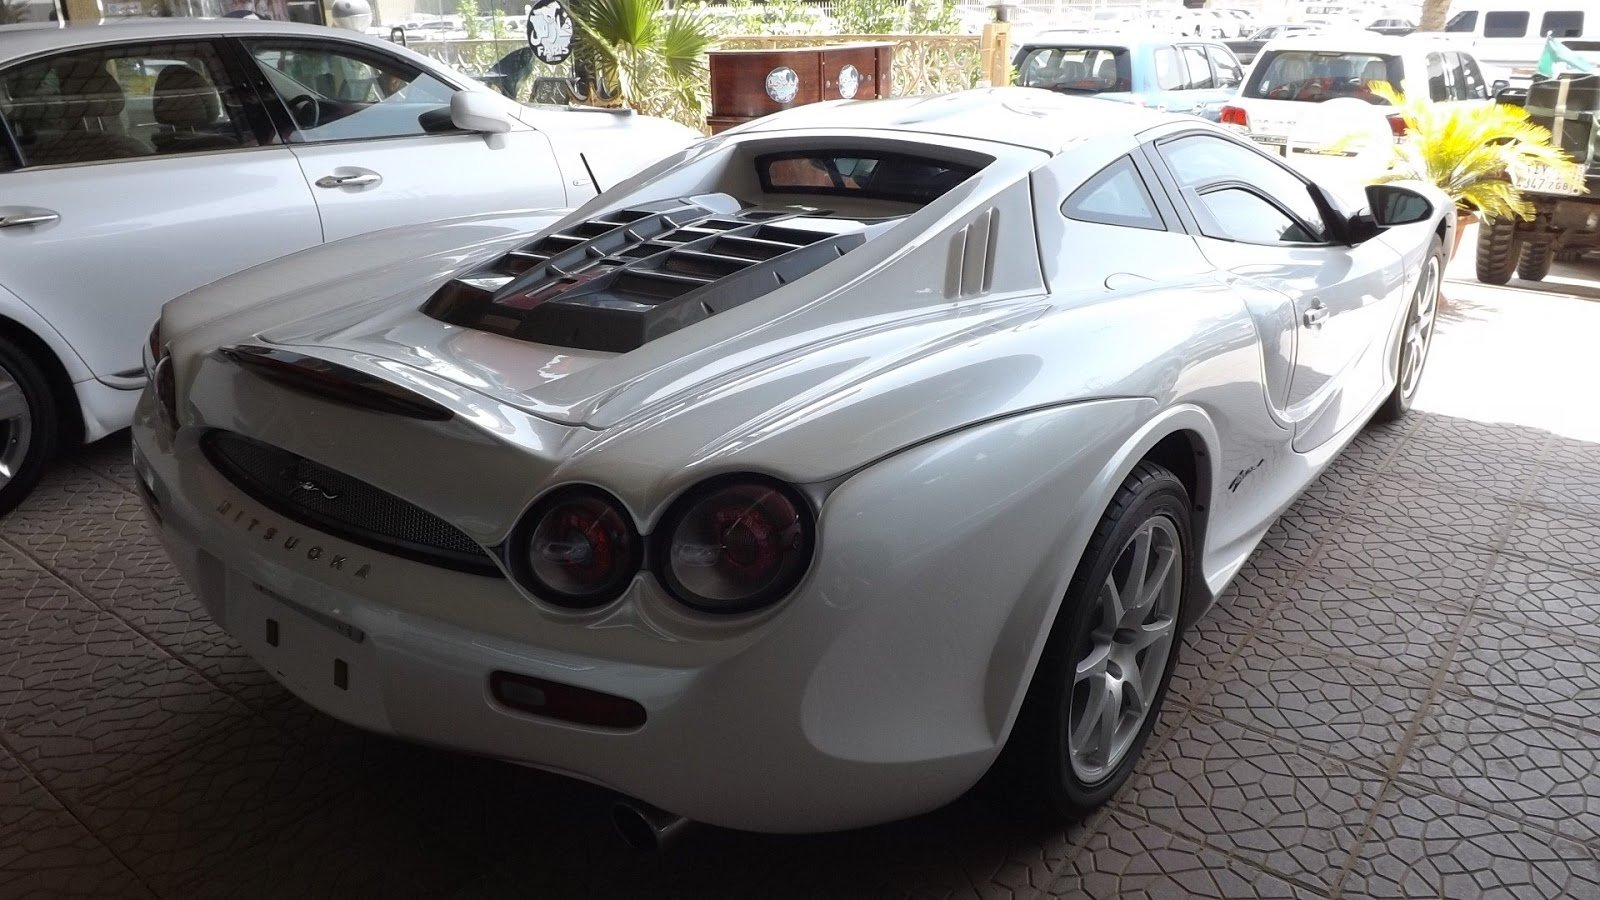 Latest Wallpapers Of Beautiful Cars Mitsuoka Orochi Free Download